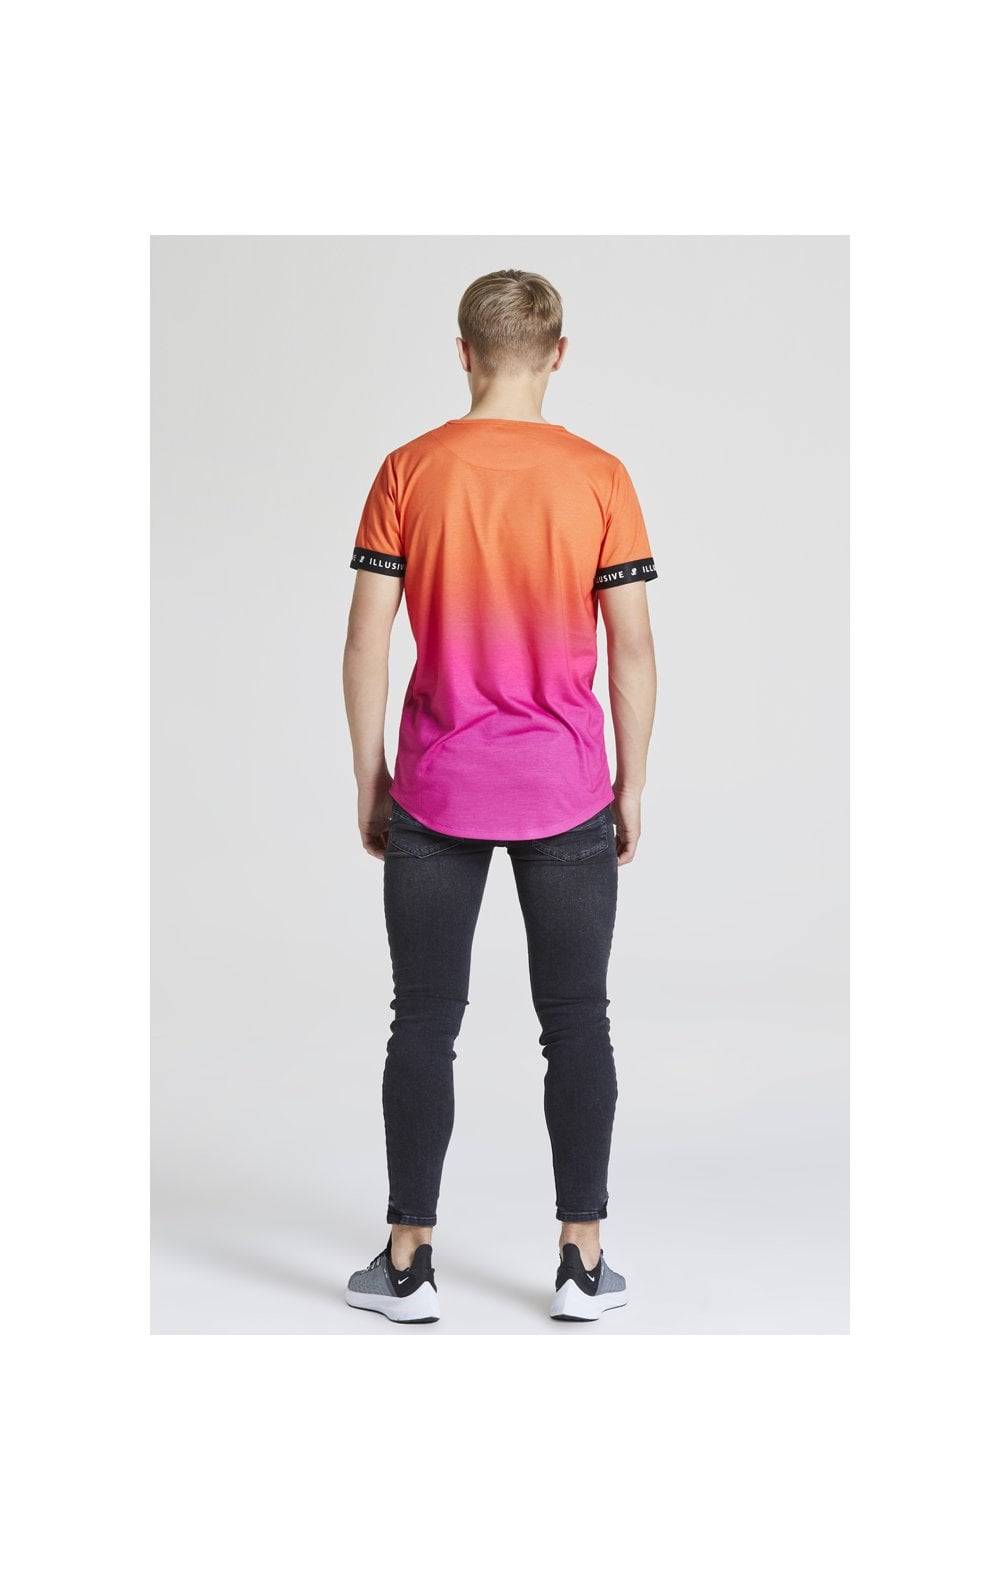 Illusive London Fade Tech Tee - Orange & Pink (4)